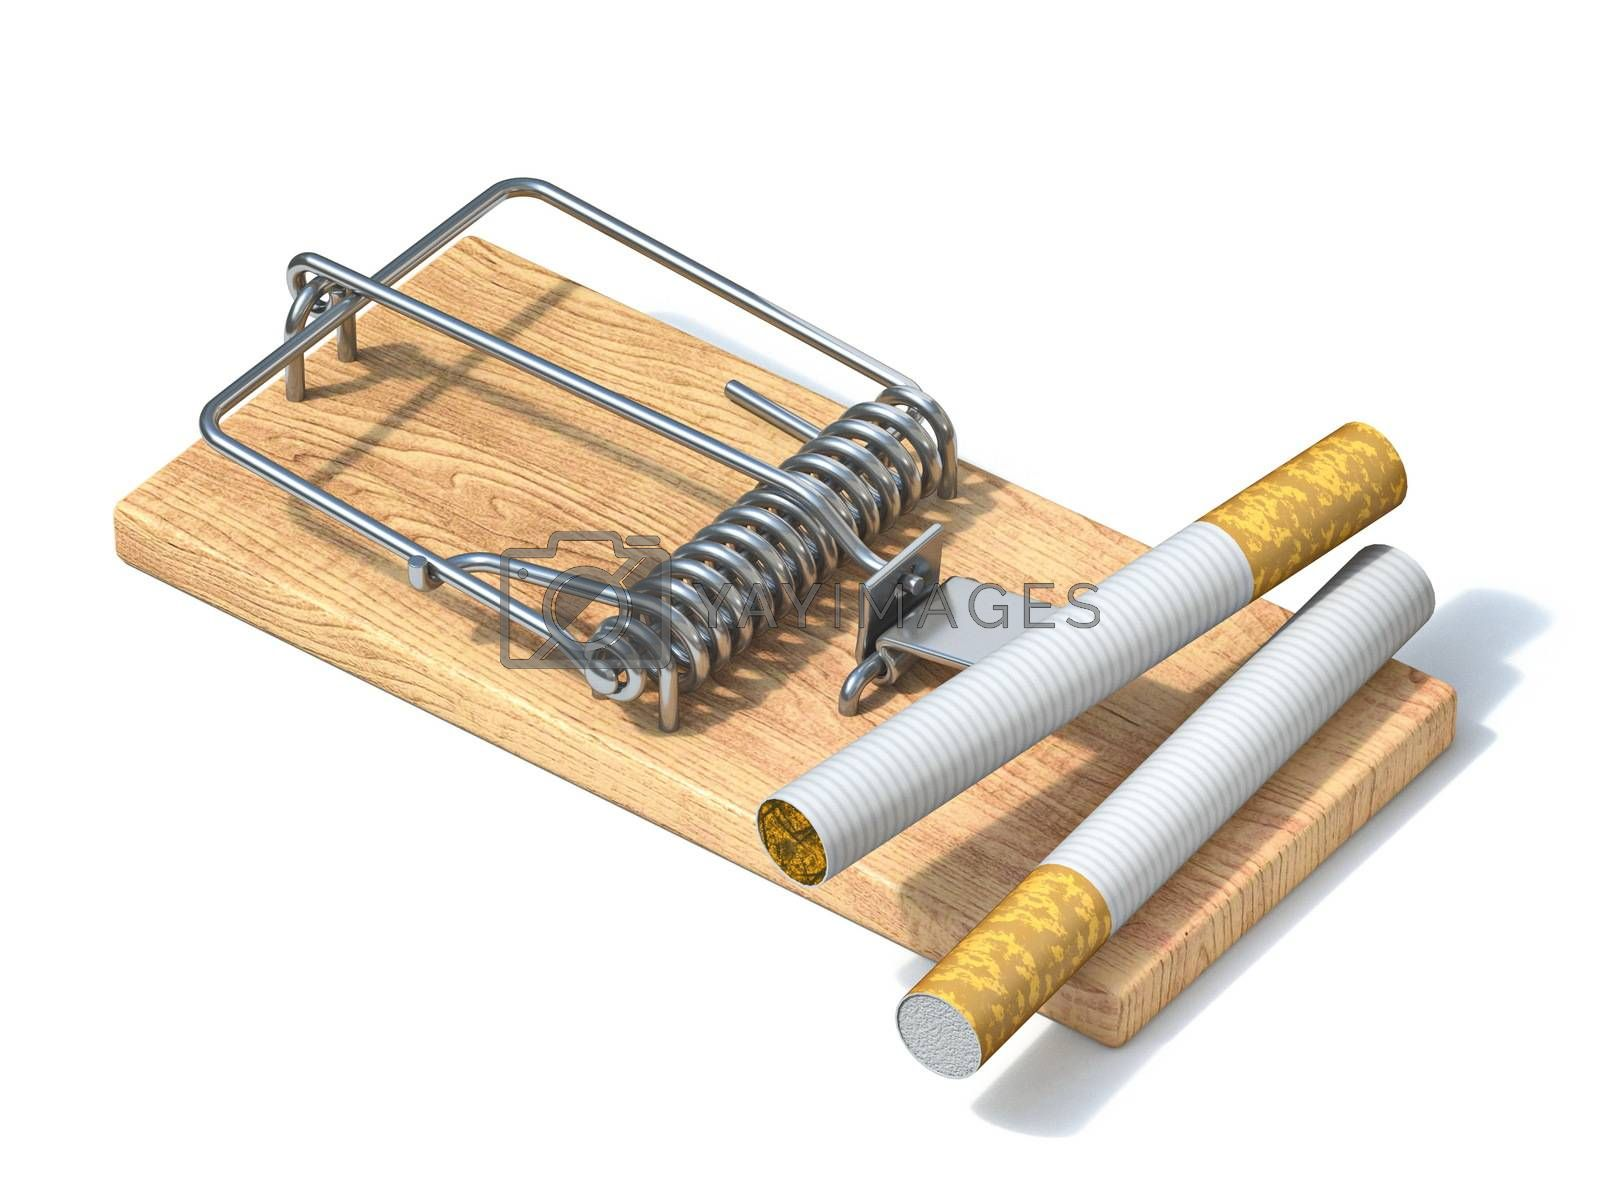 Cigarettes in wooden mousetrap 3D render illustration isolated on white background